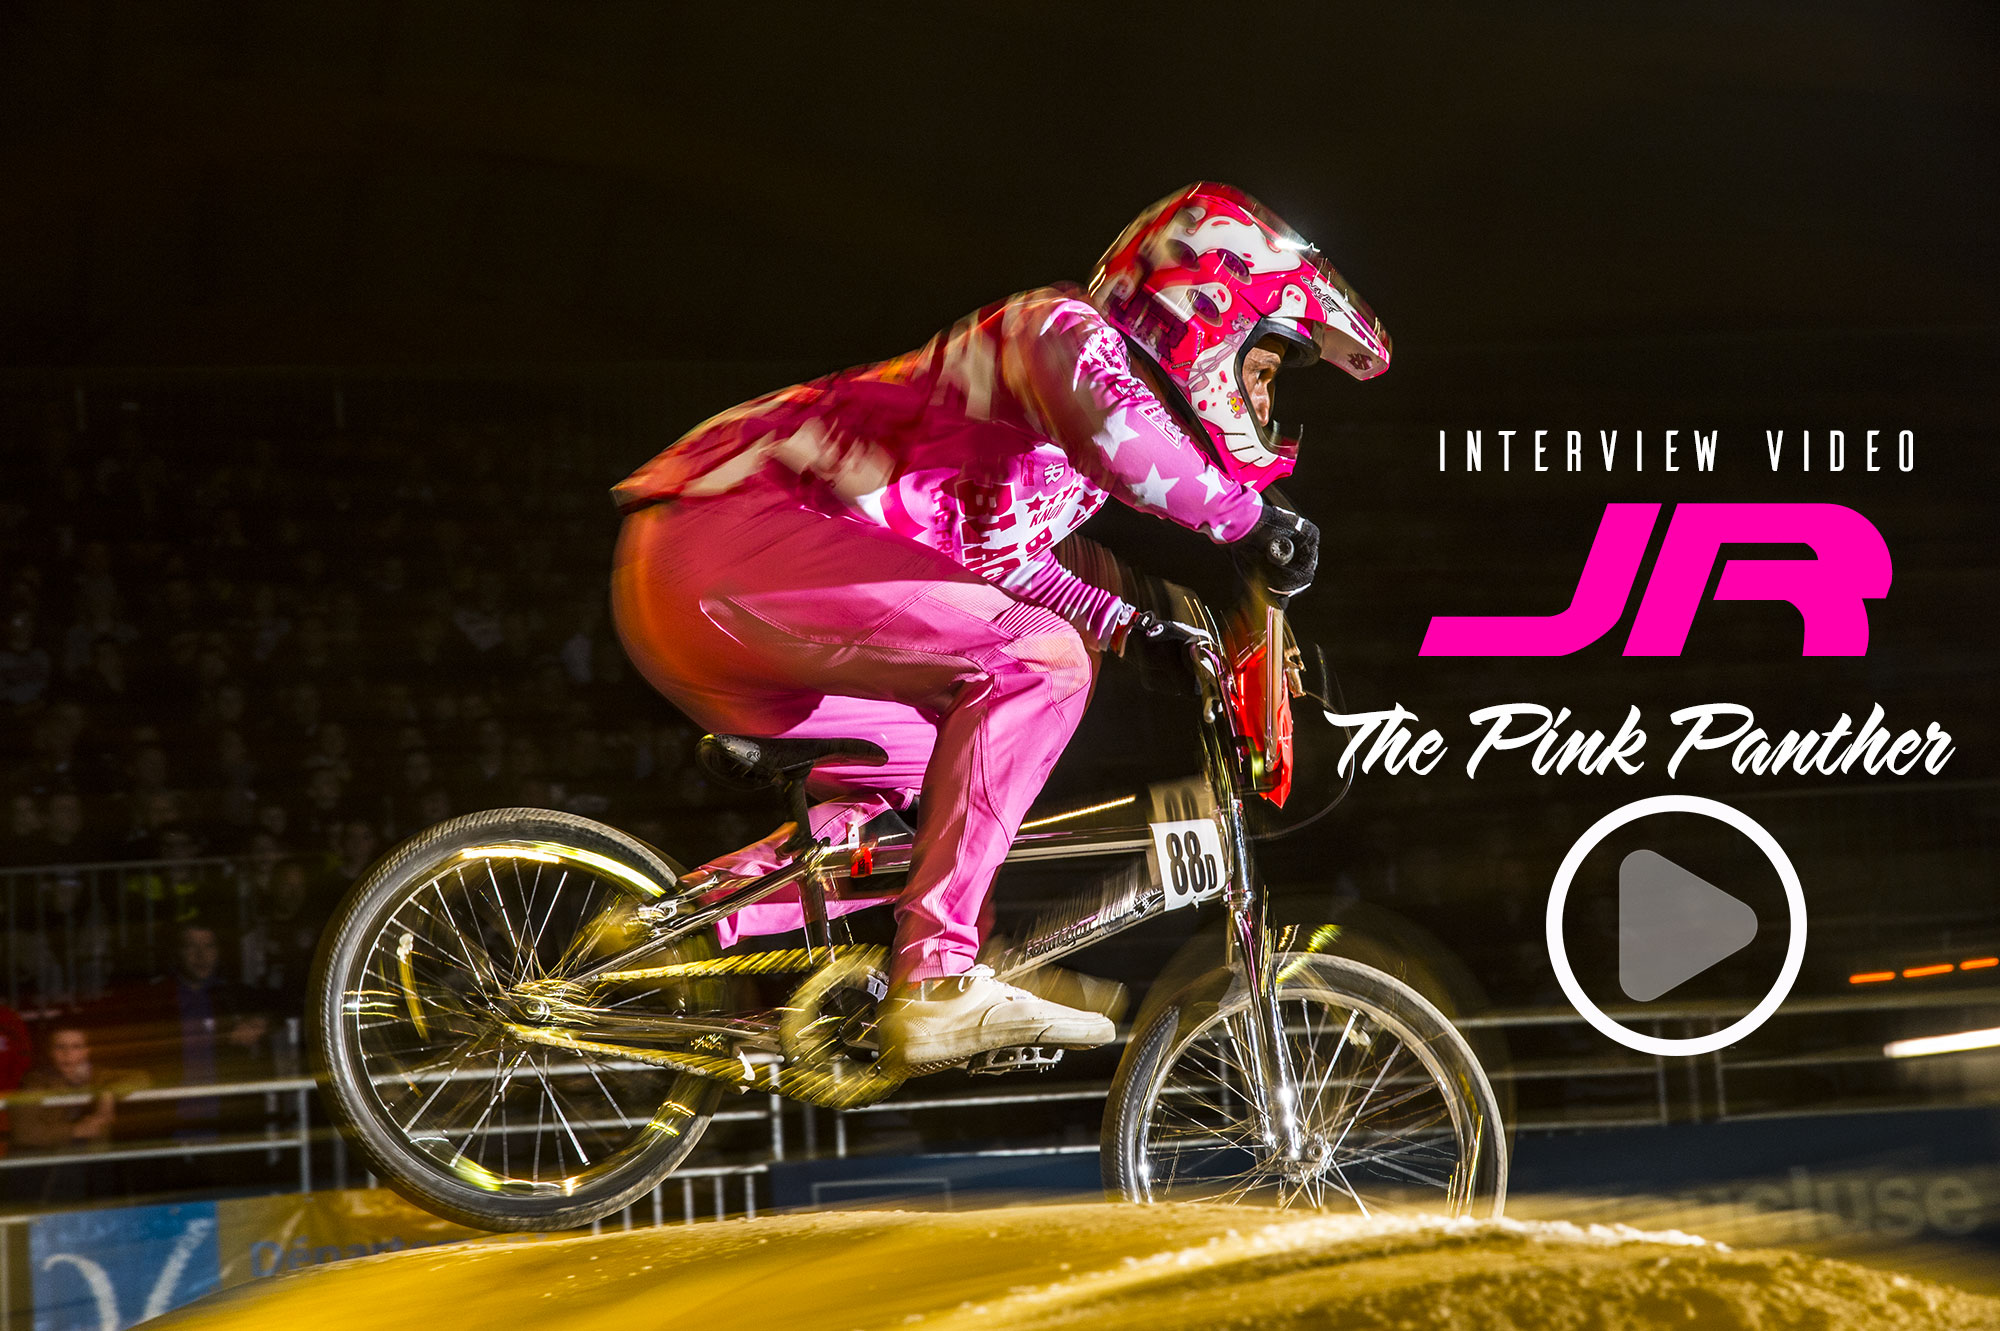 Interview vidéo de « JR » the Pink Panther !